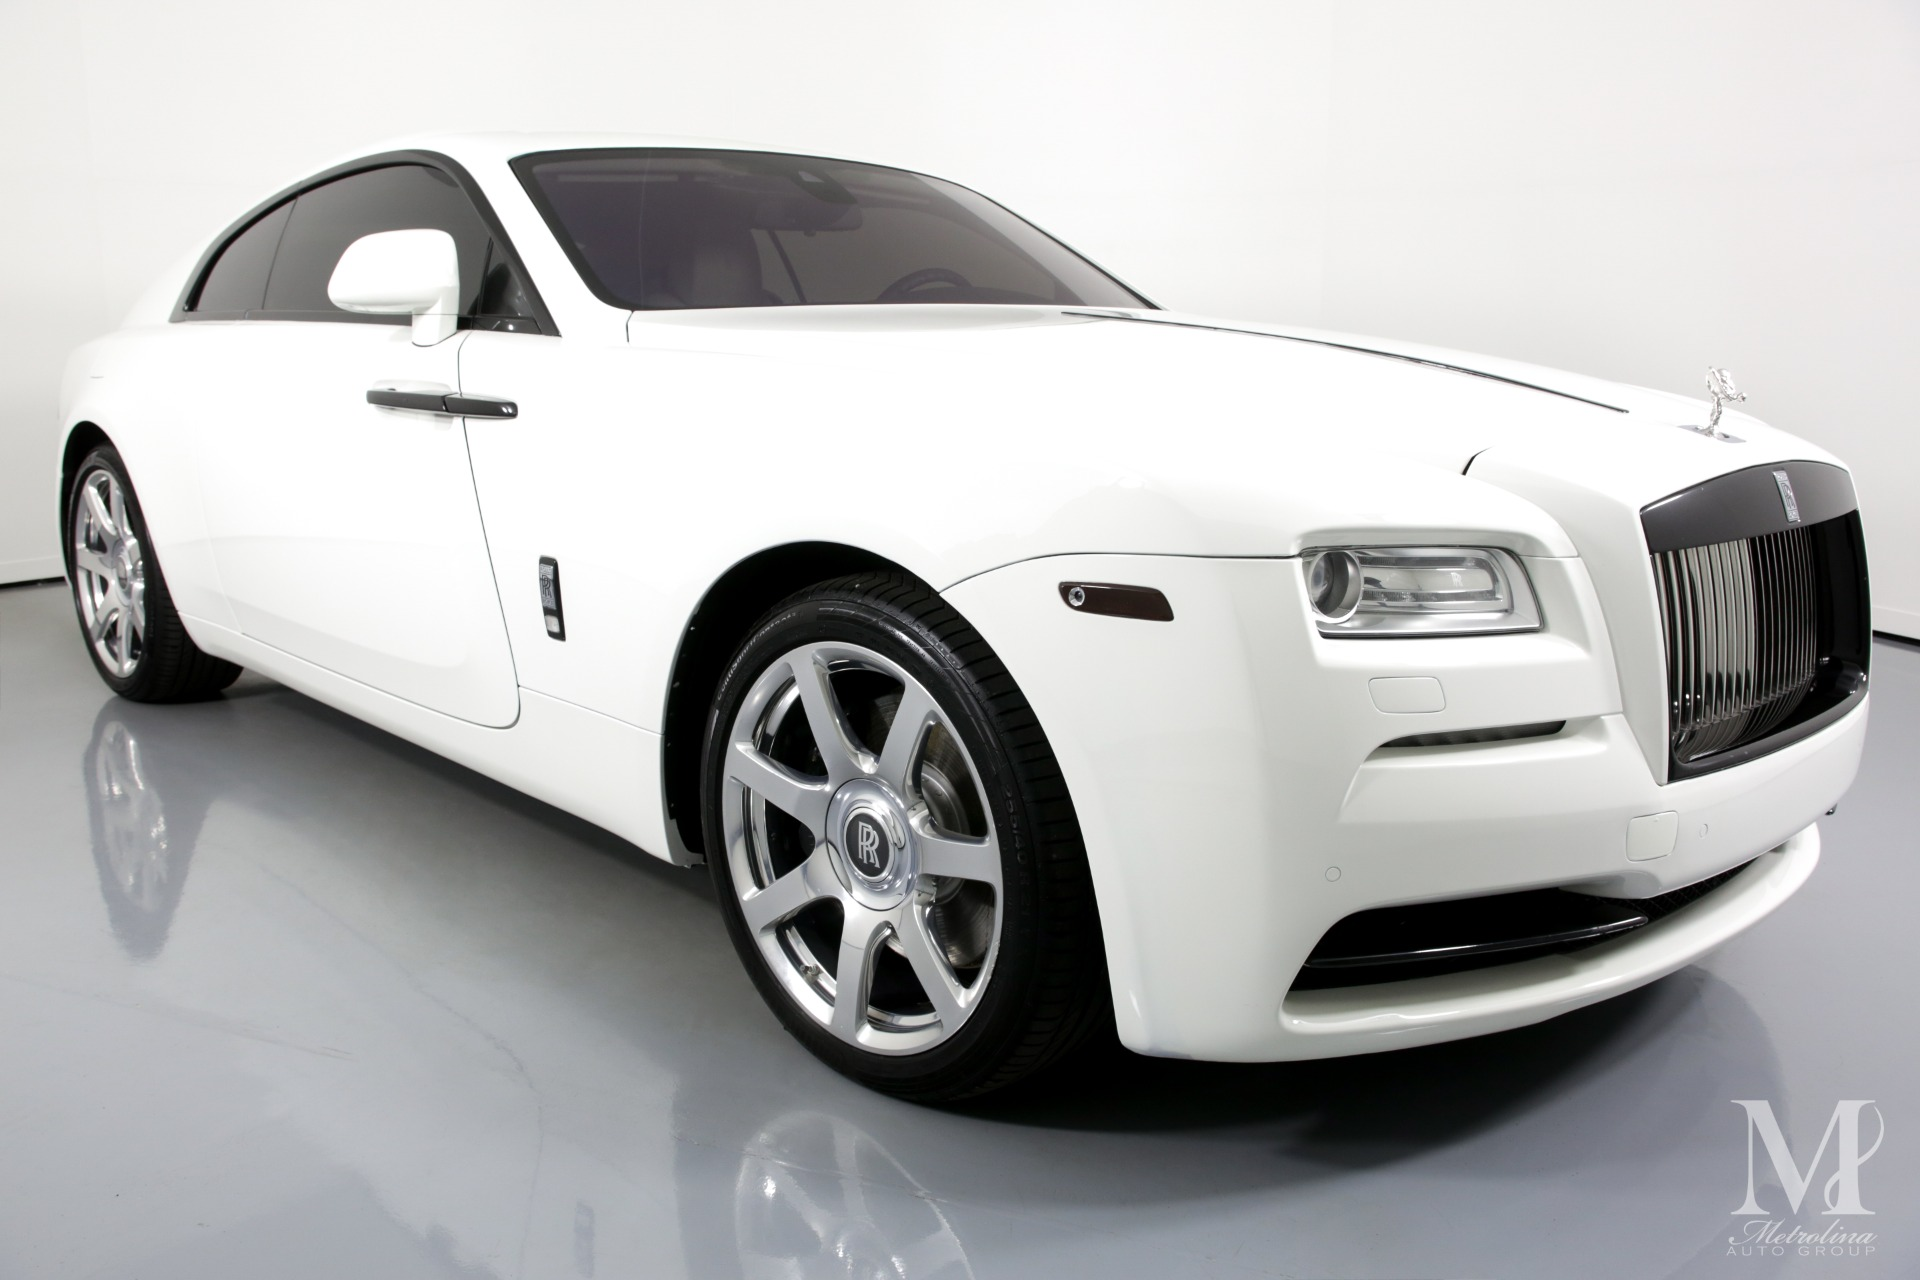 Used 2014 Rolls-Royce Wraith Base 2dr Coupe for sale Sold at Metrolina Auto Group in Charlotte NC 28217 - 2